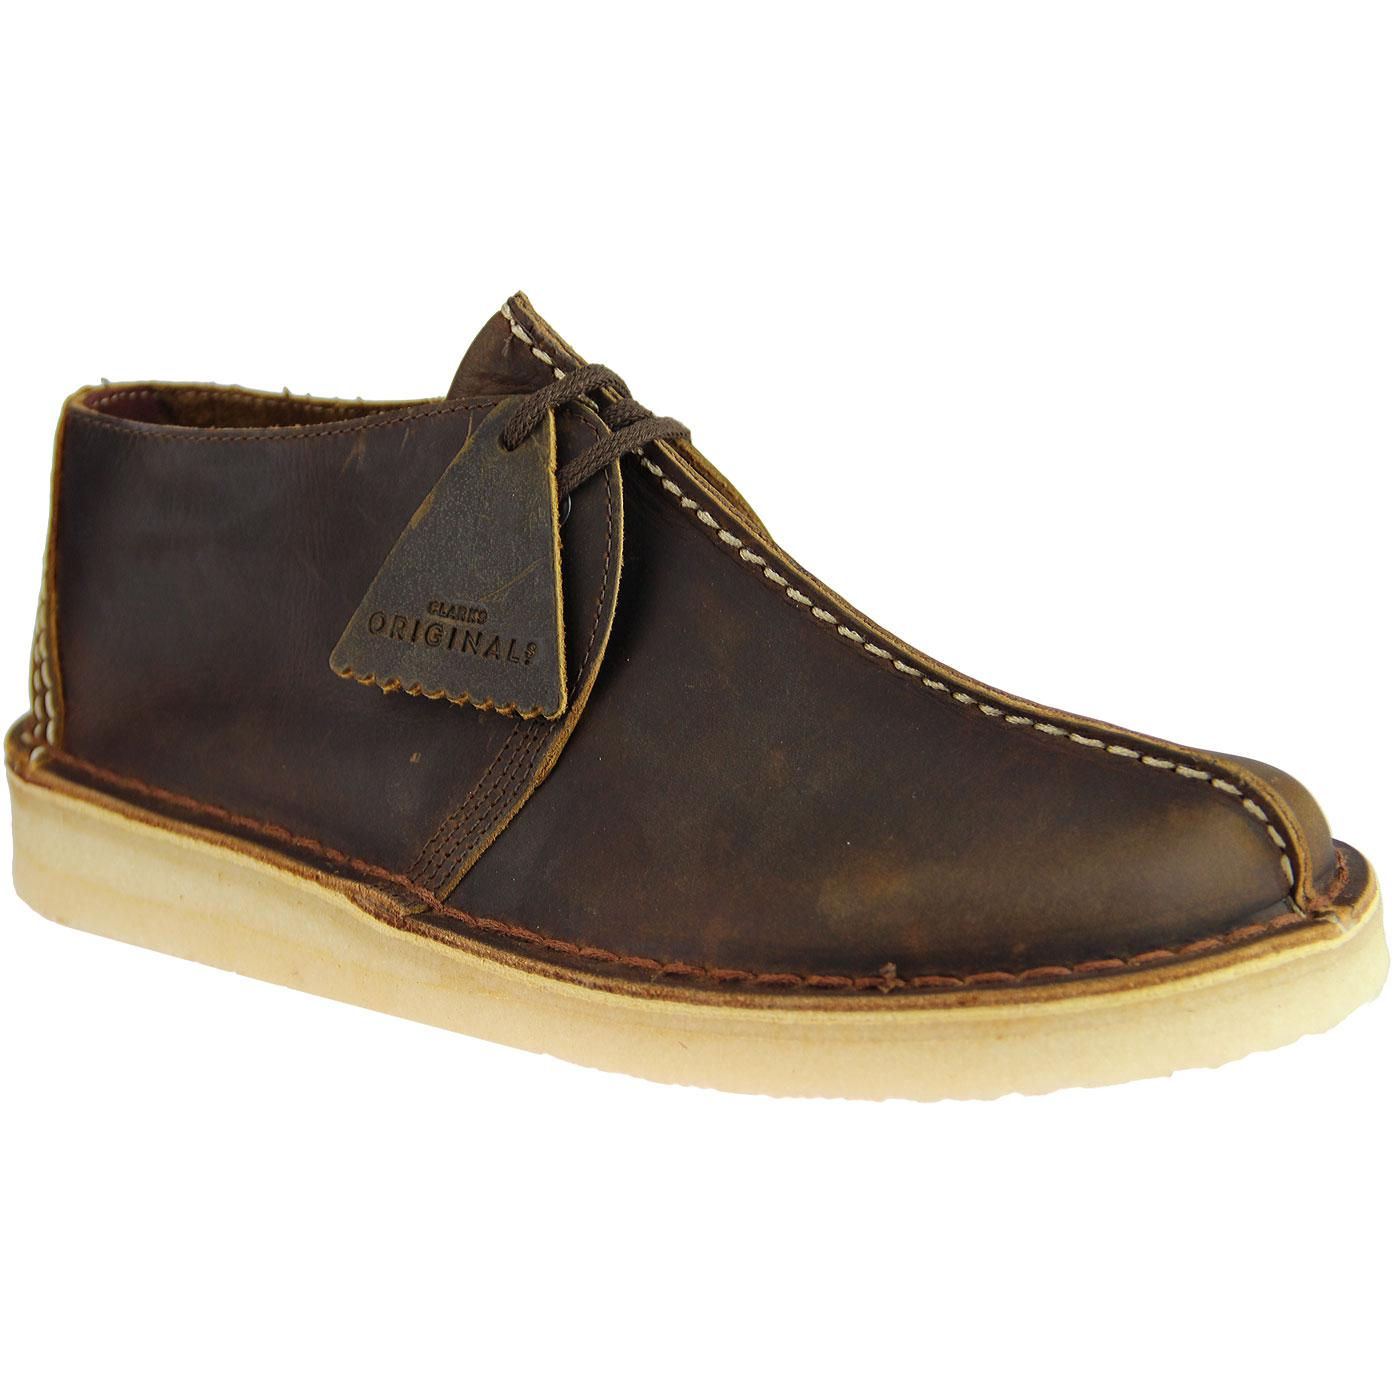 9e83713b3779 CLARKS ORIGINALS Desert Trek Mod 70s Beeswax Shoes